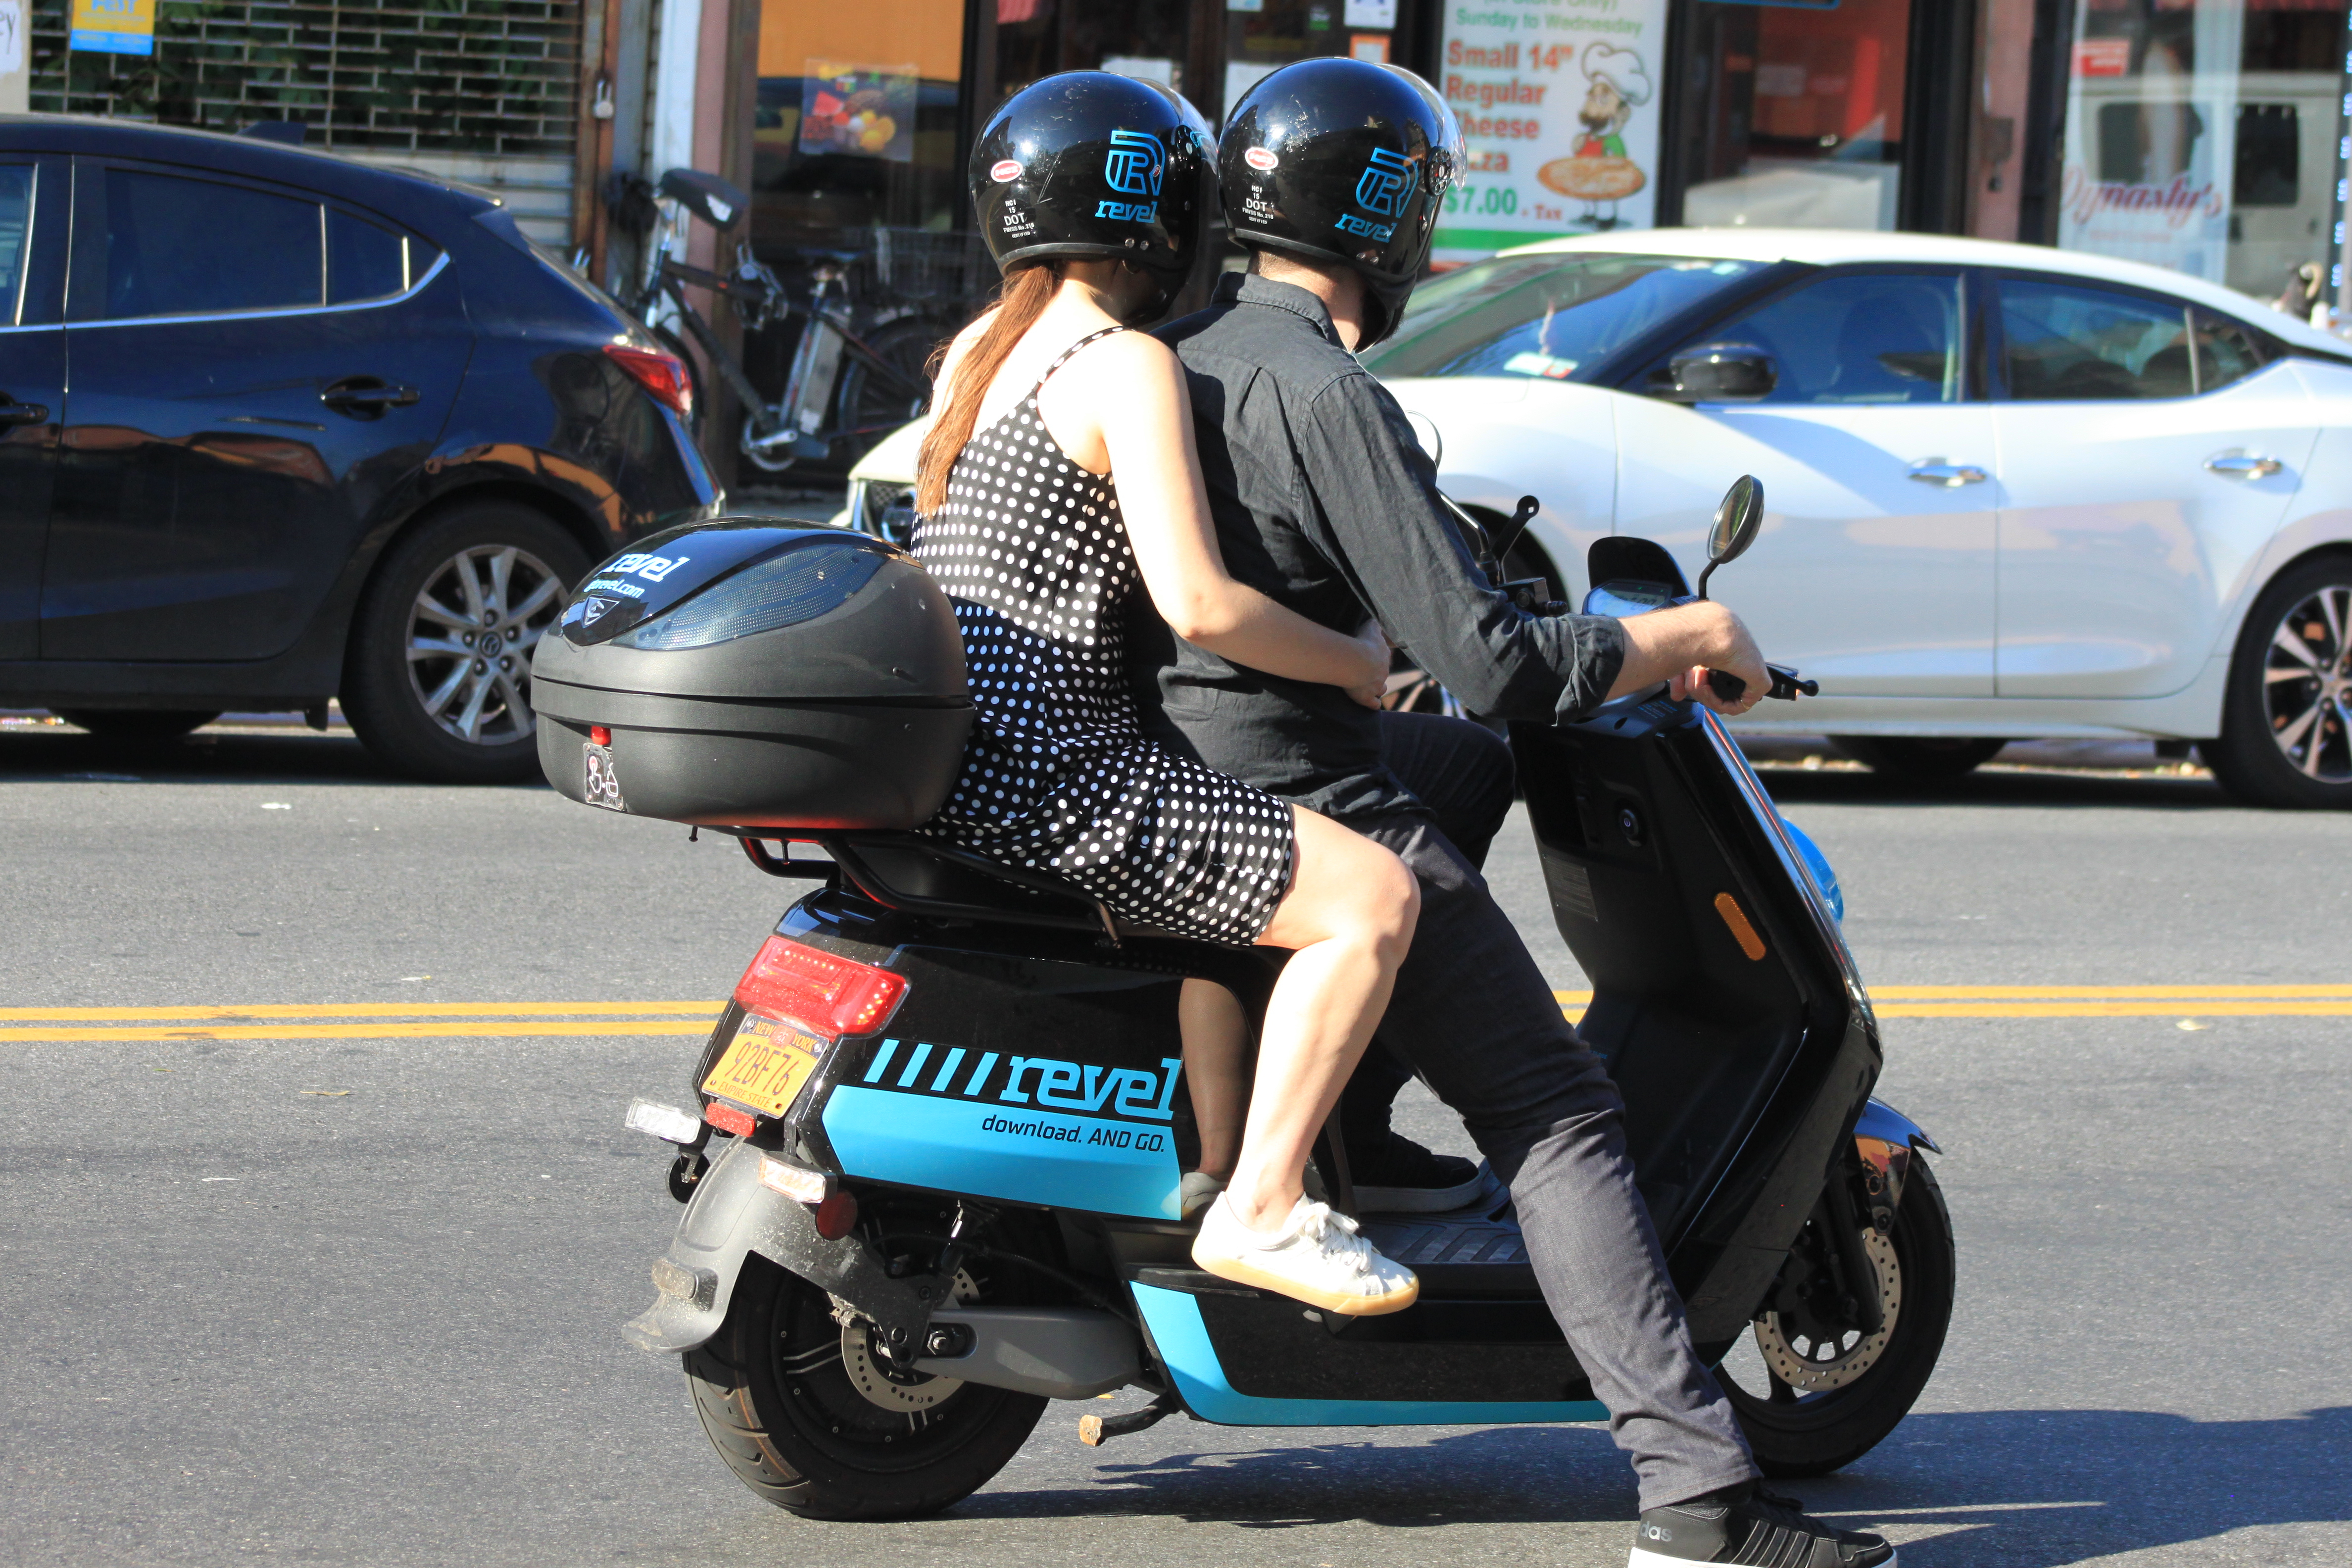 A man and a woman ride a blue Revel moped in New York. In the background, cars are parked on the street.